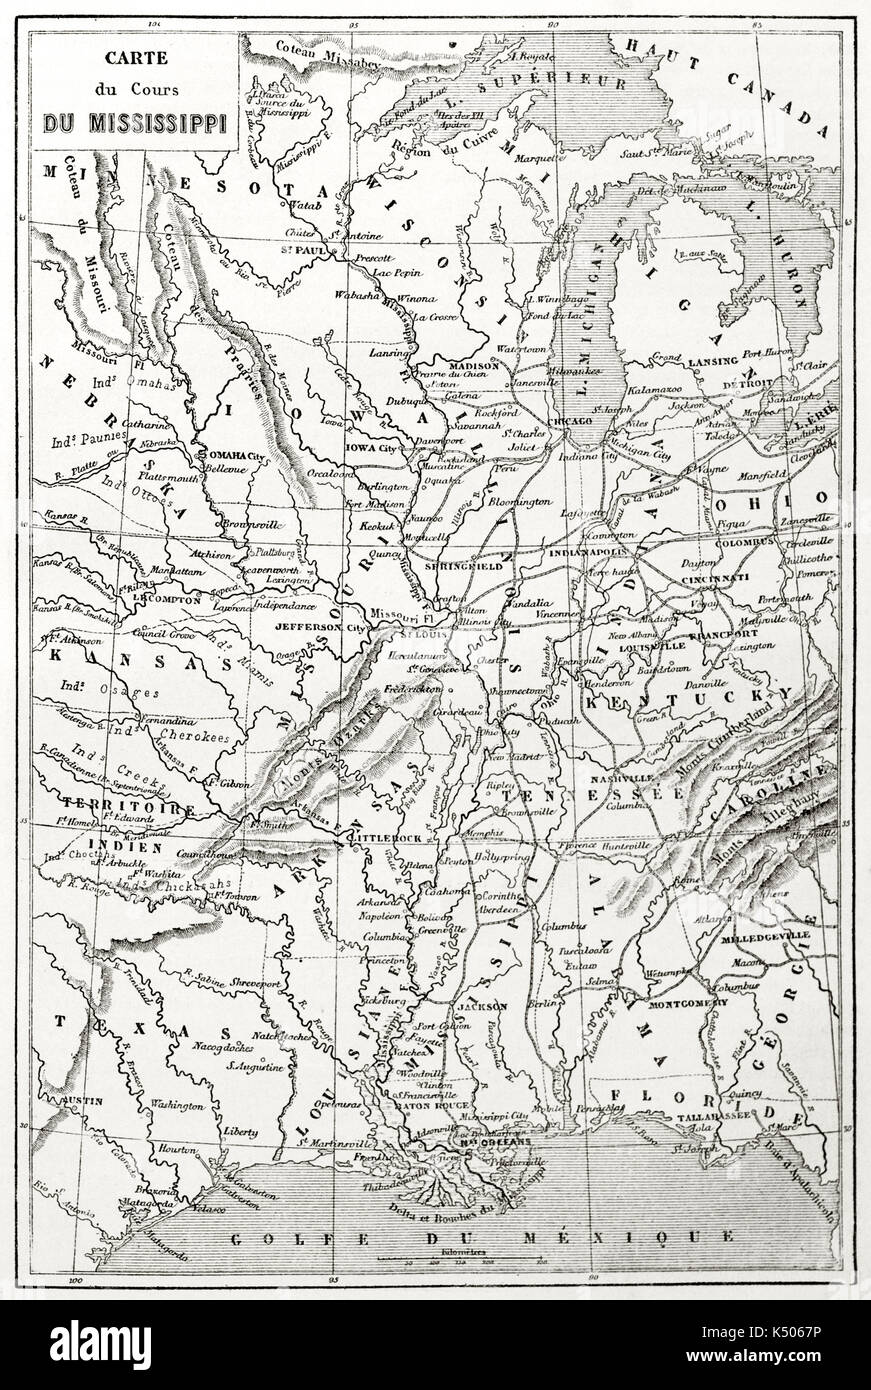 Topographic Map Mississippi.Old Topographic Map Of Mississippi River Course Created By Erhard